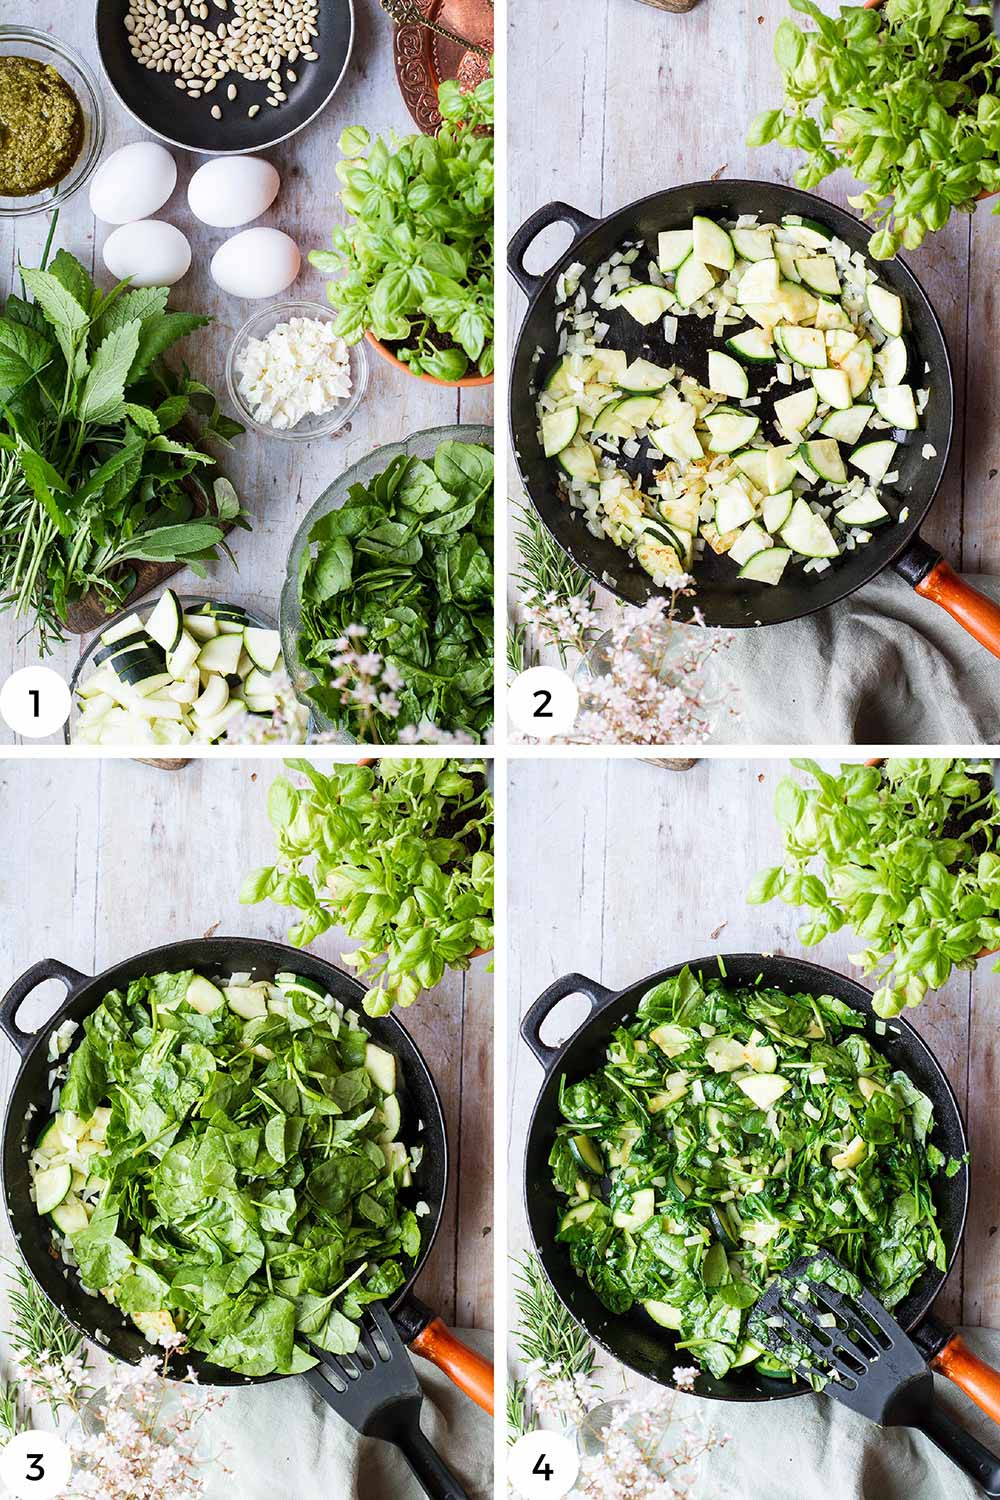 Steps to make the bed of spinach.